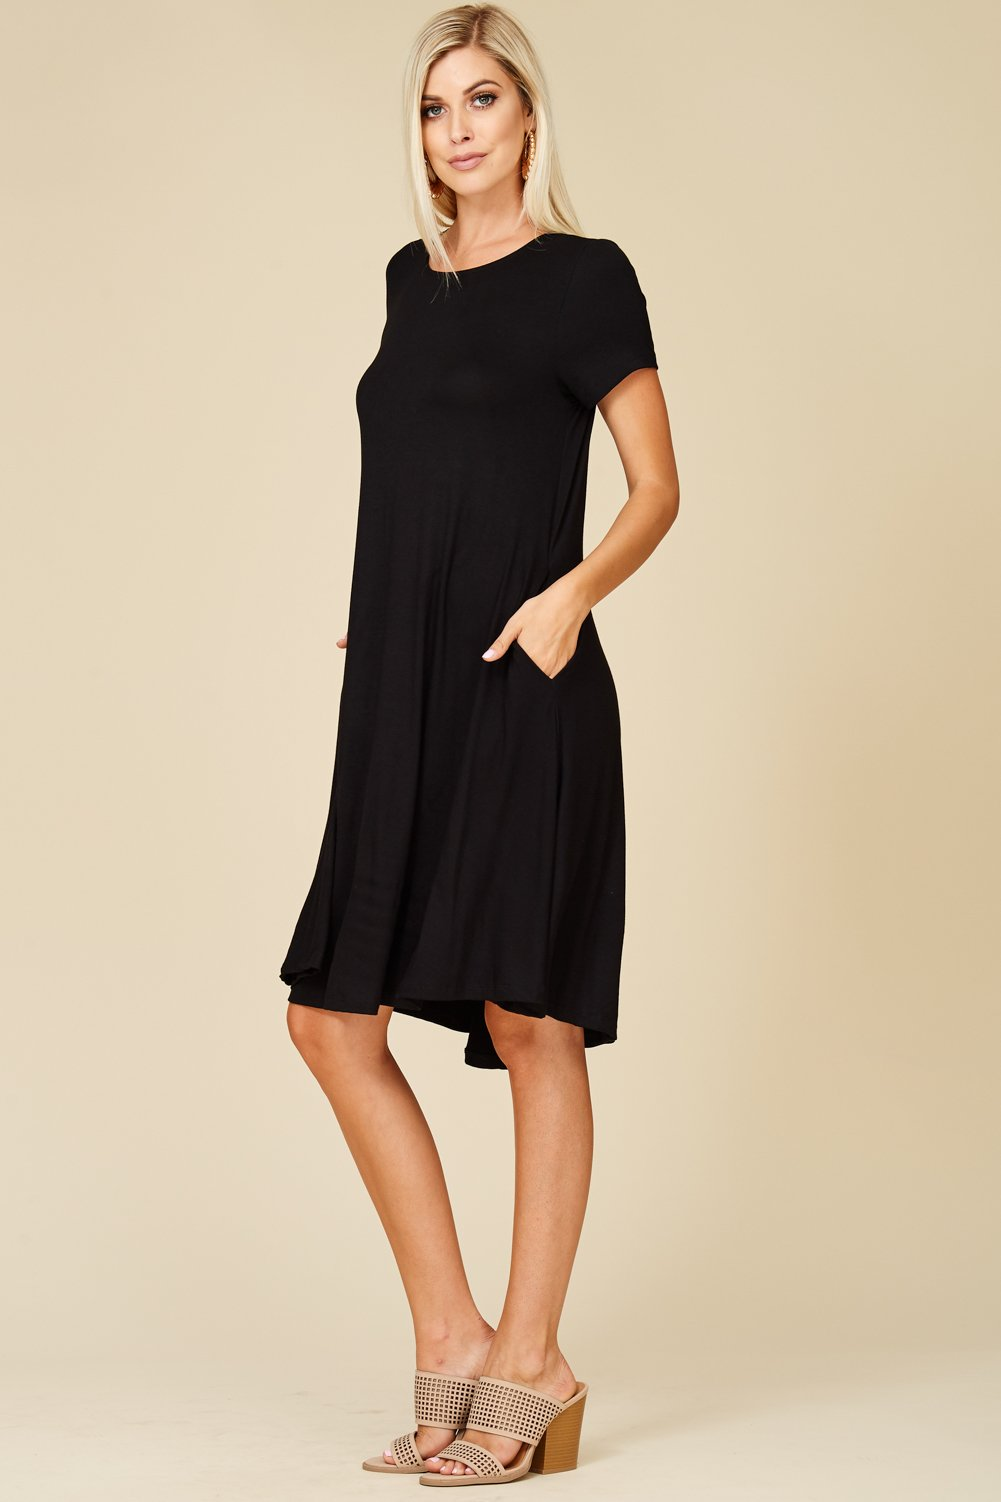 Annabelle Women's Comfy Short Sleeve Scoop Neck Swing Dresses with Pockets 3X-Large Black D5213X by Annabelle (Image #2)